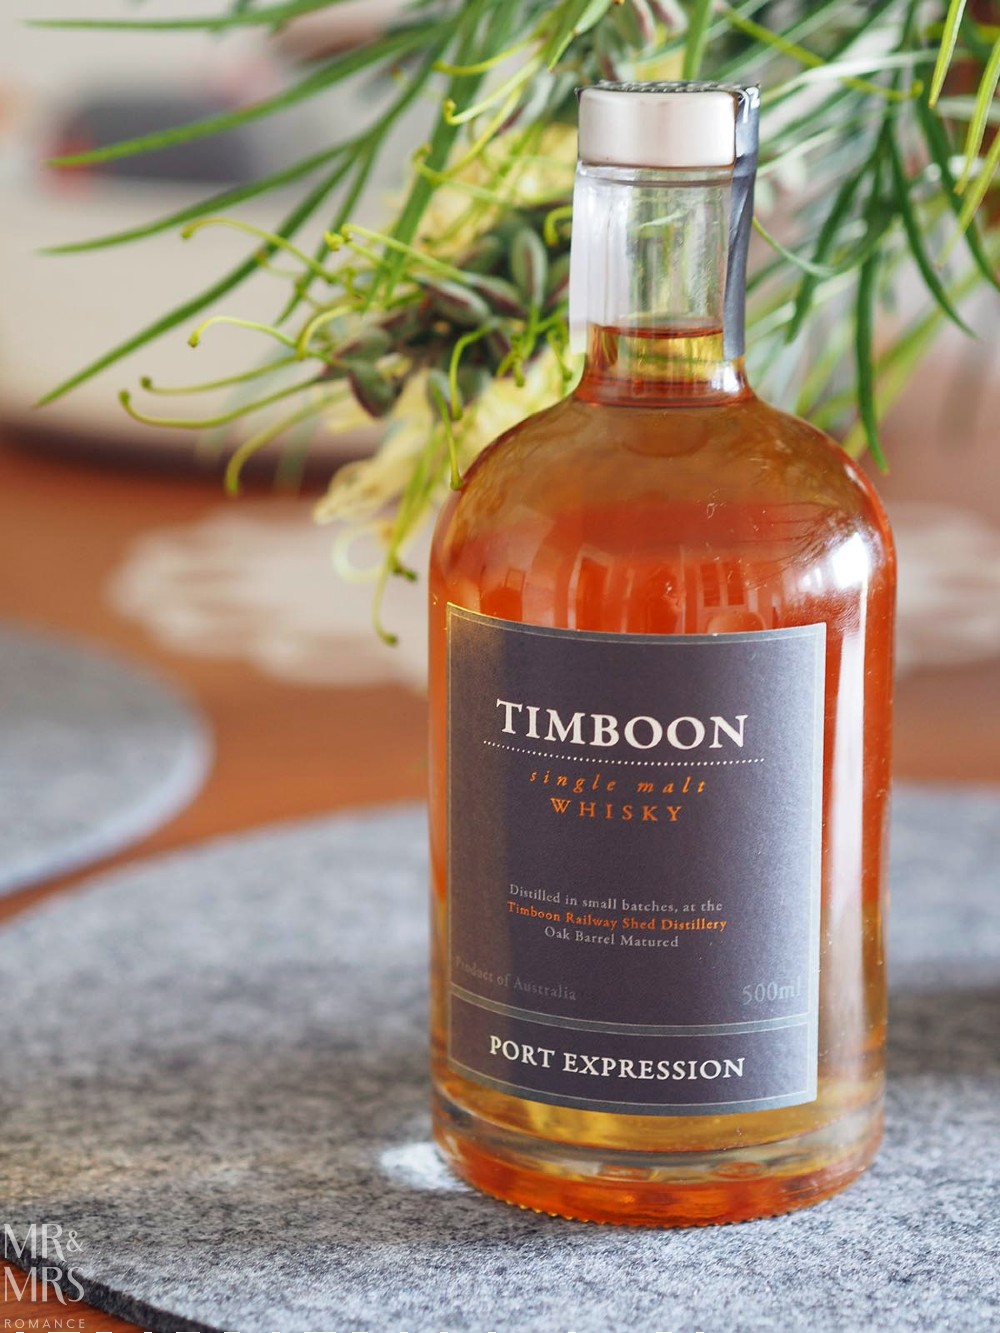 Timboon Railway Shed Distillery Port Expression single malt whisky